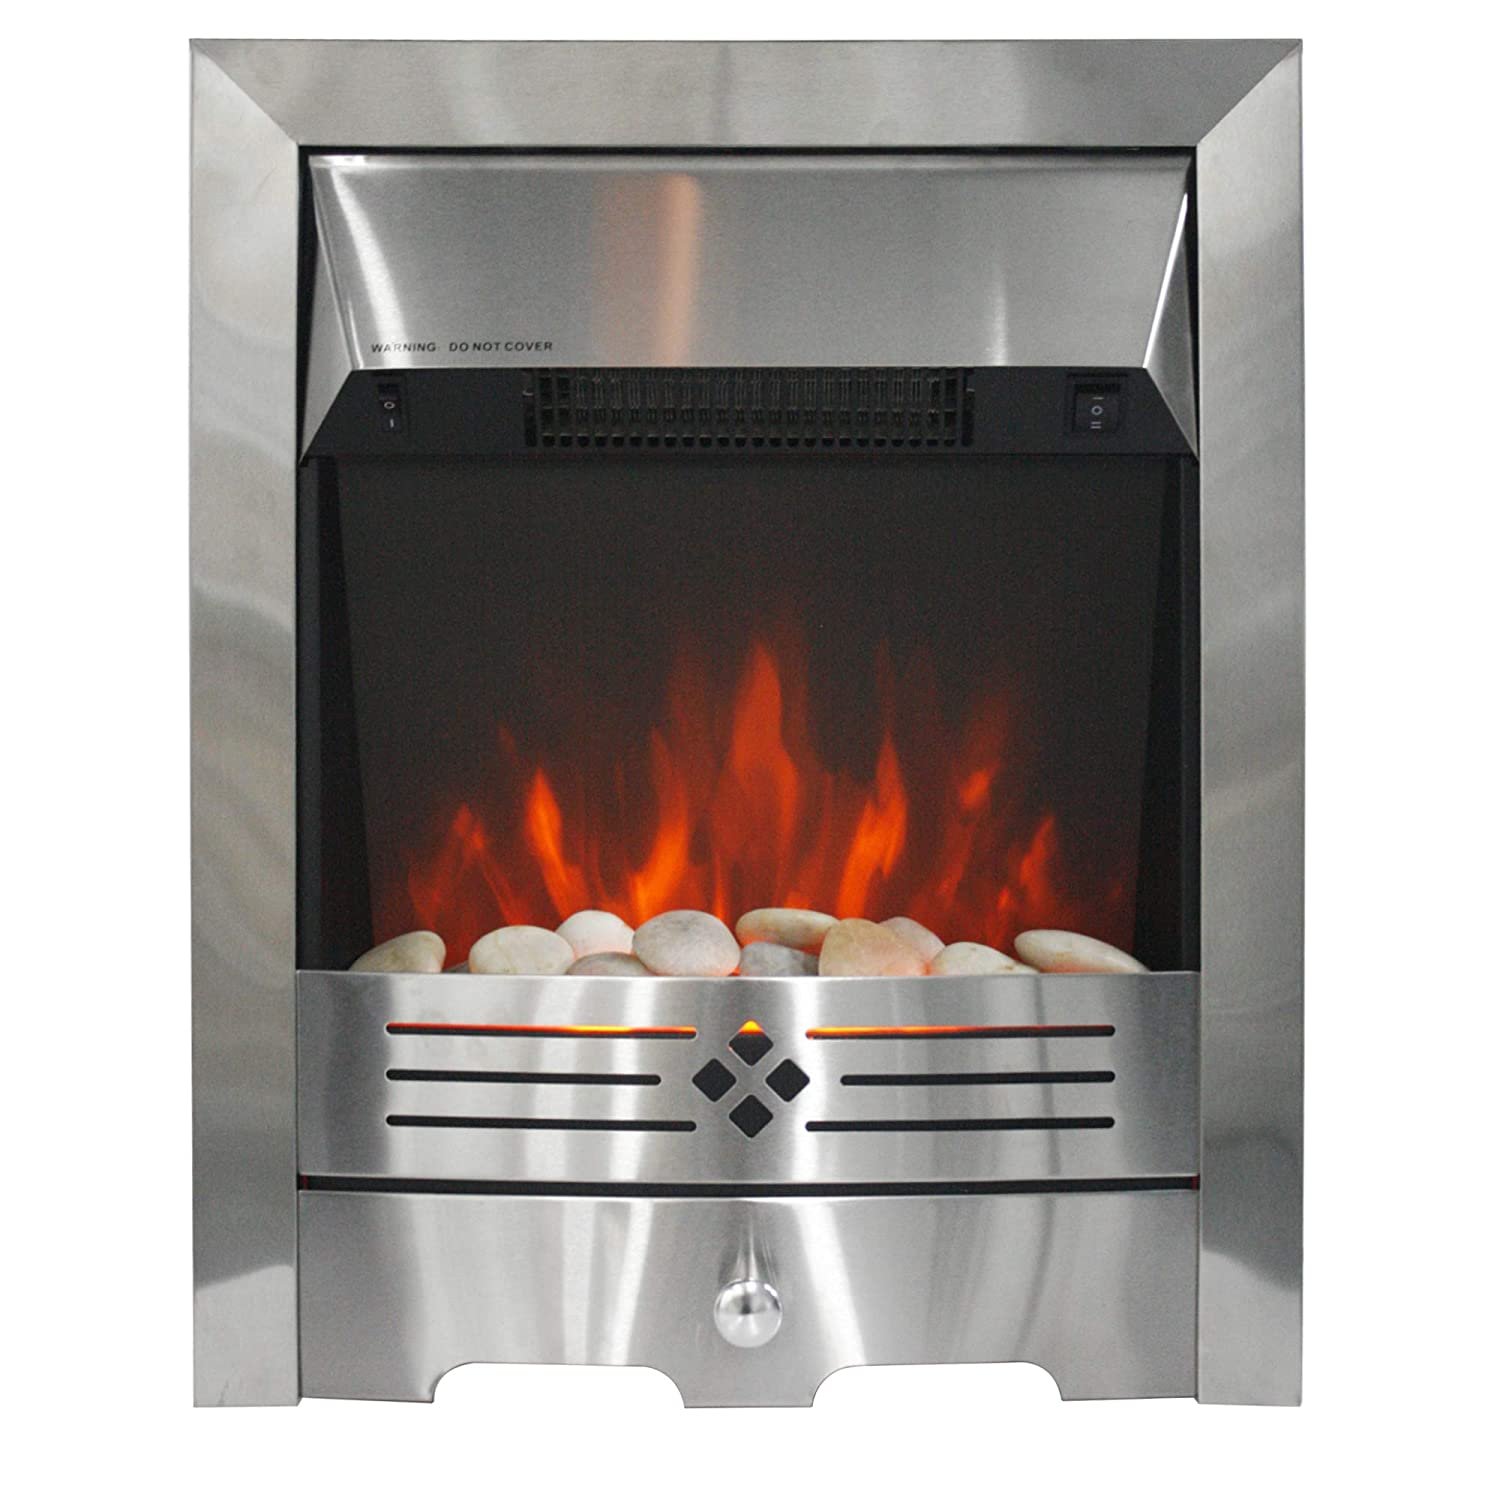 MODERN LIFE LED Light Complete Electric Fireplace Heating 2000W Indoor Heater Coal Burning Flame Effect